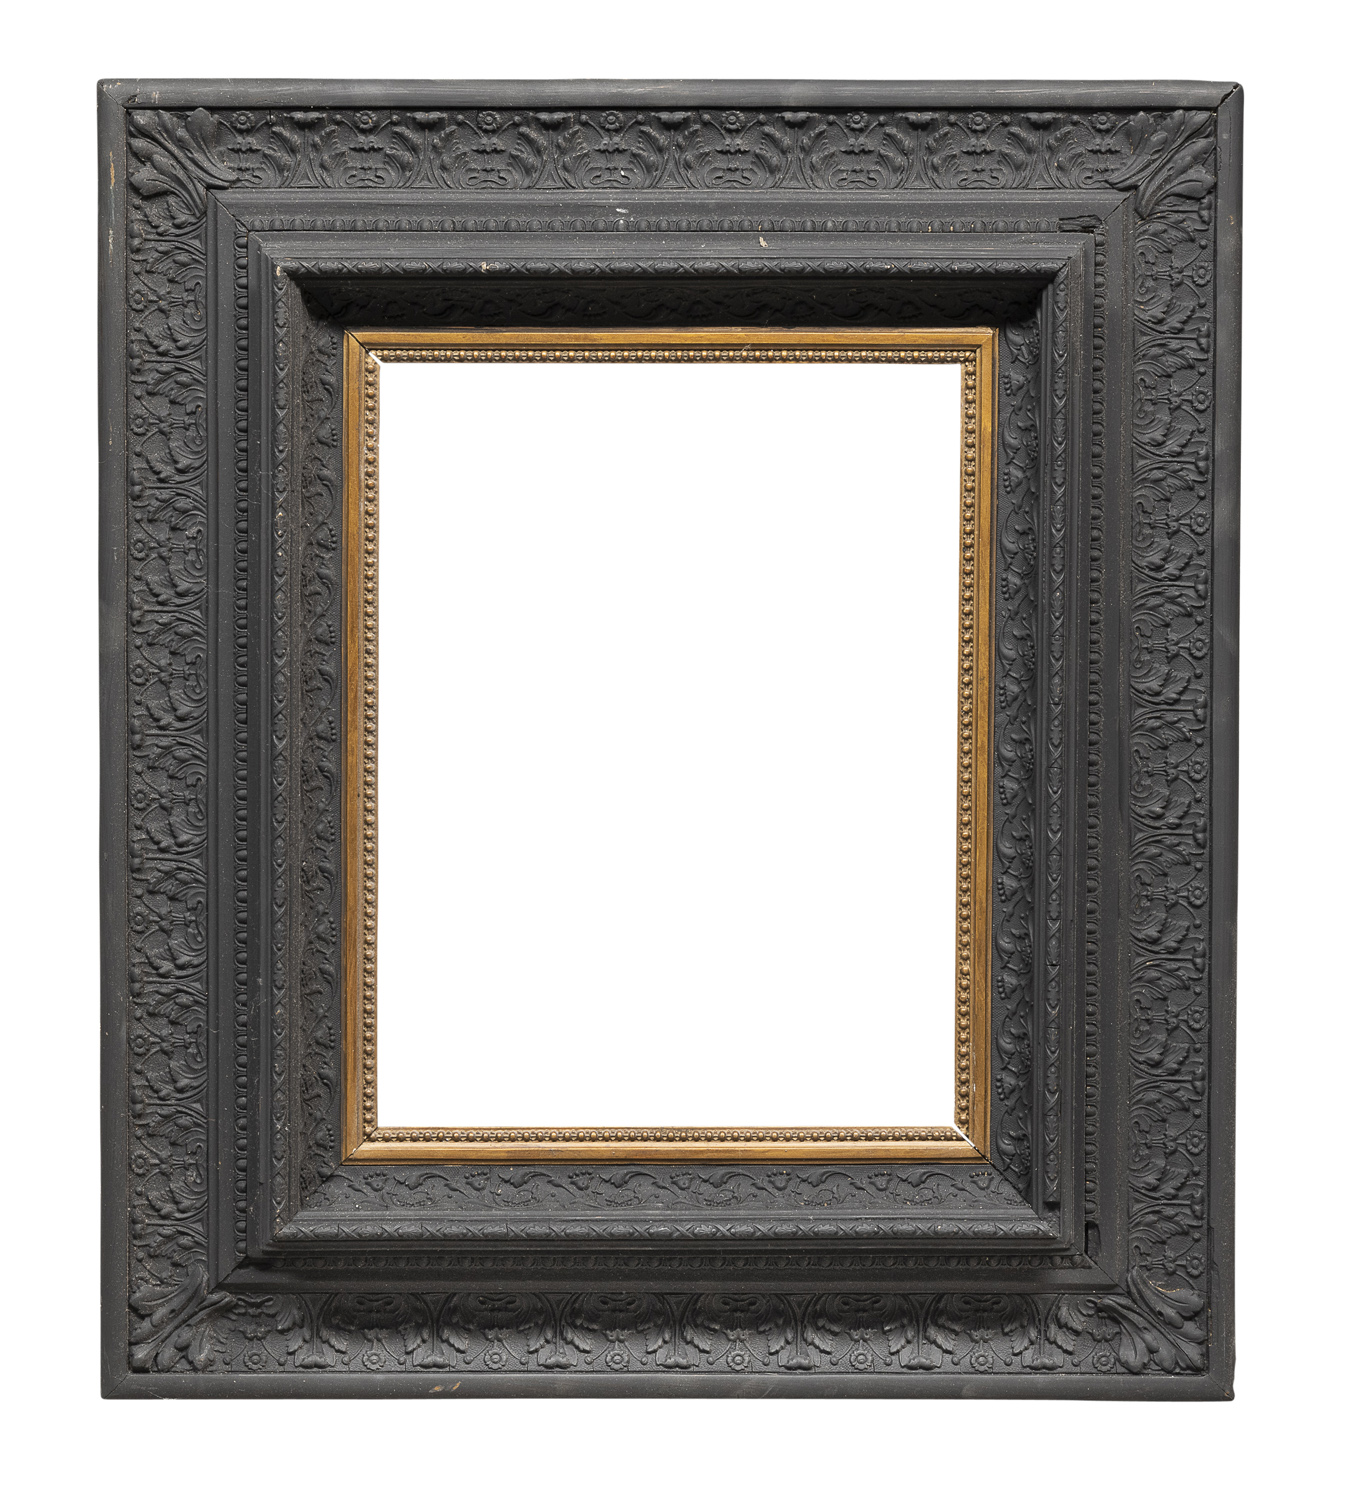 WOODEN FRAME EARLY 20TH CENTURY